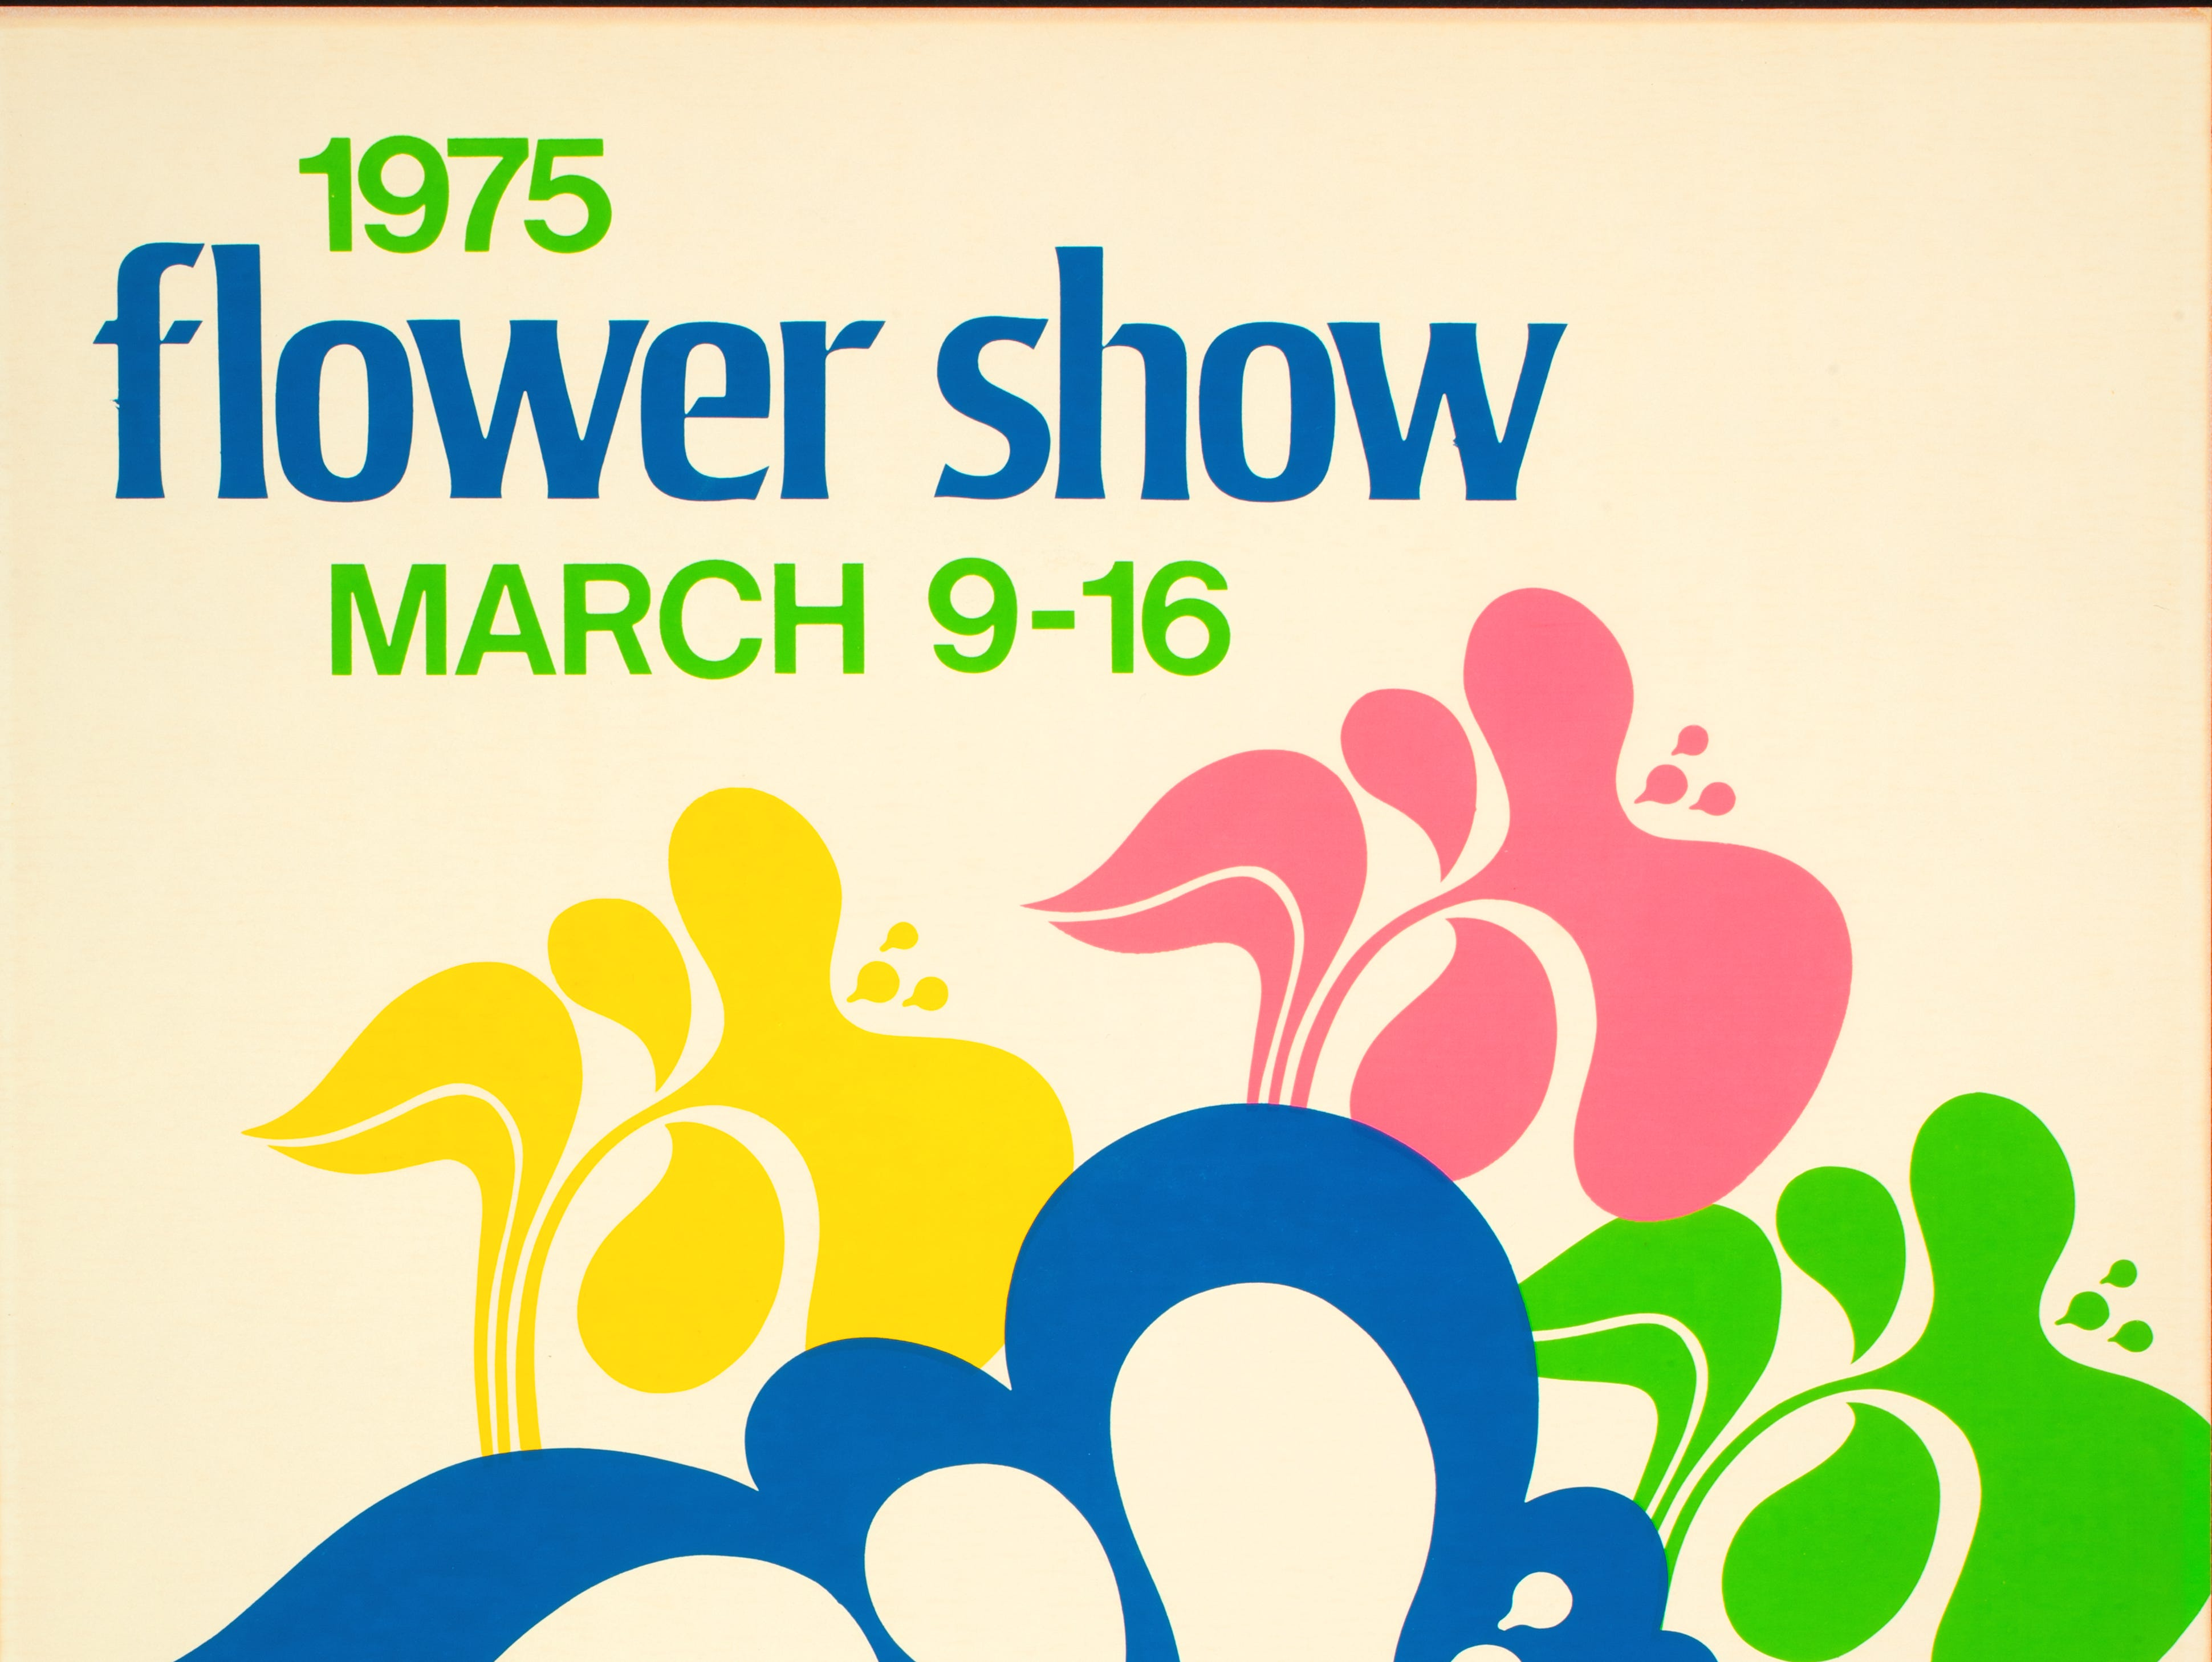 A poster from the 1975 Philadelphia Flower Show.